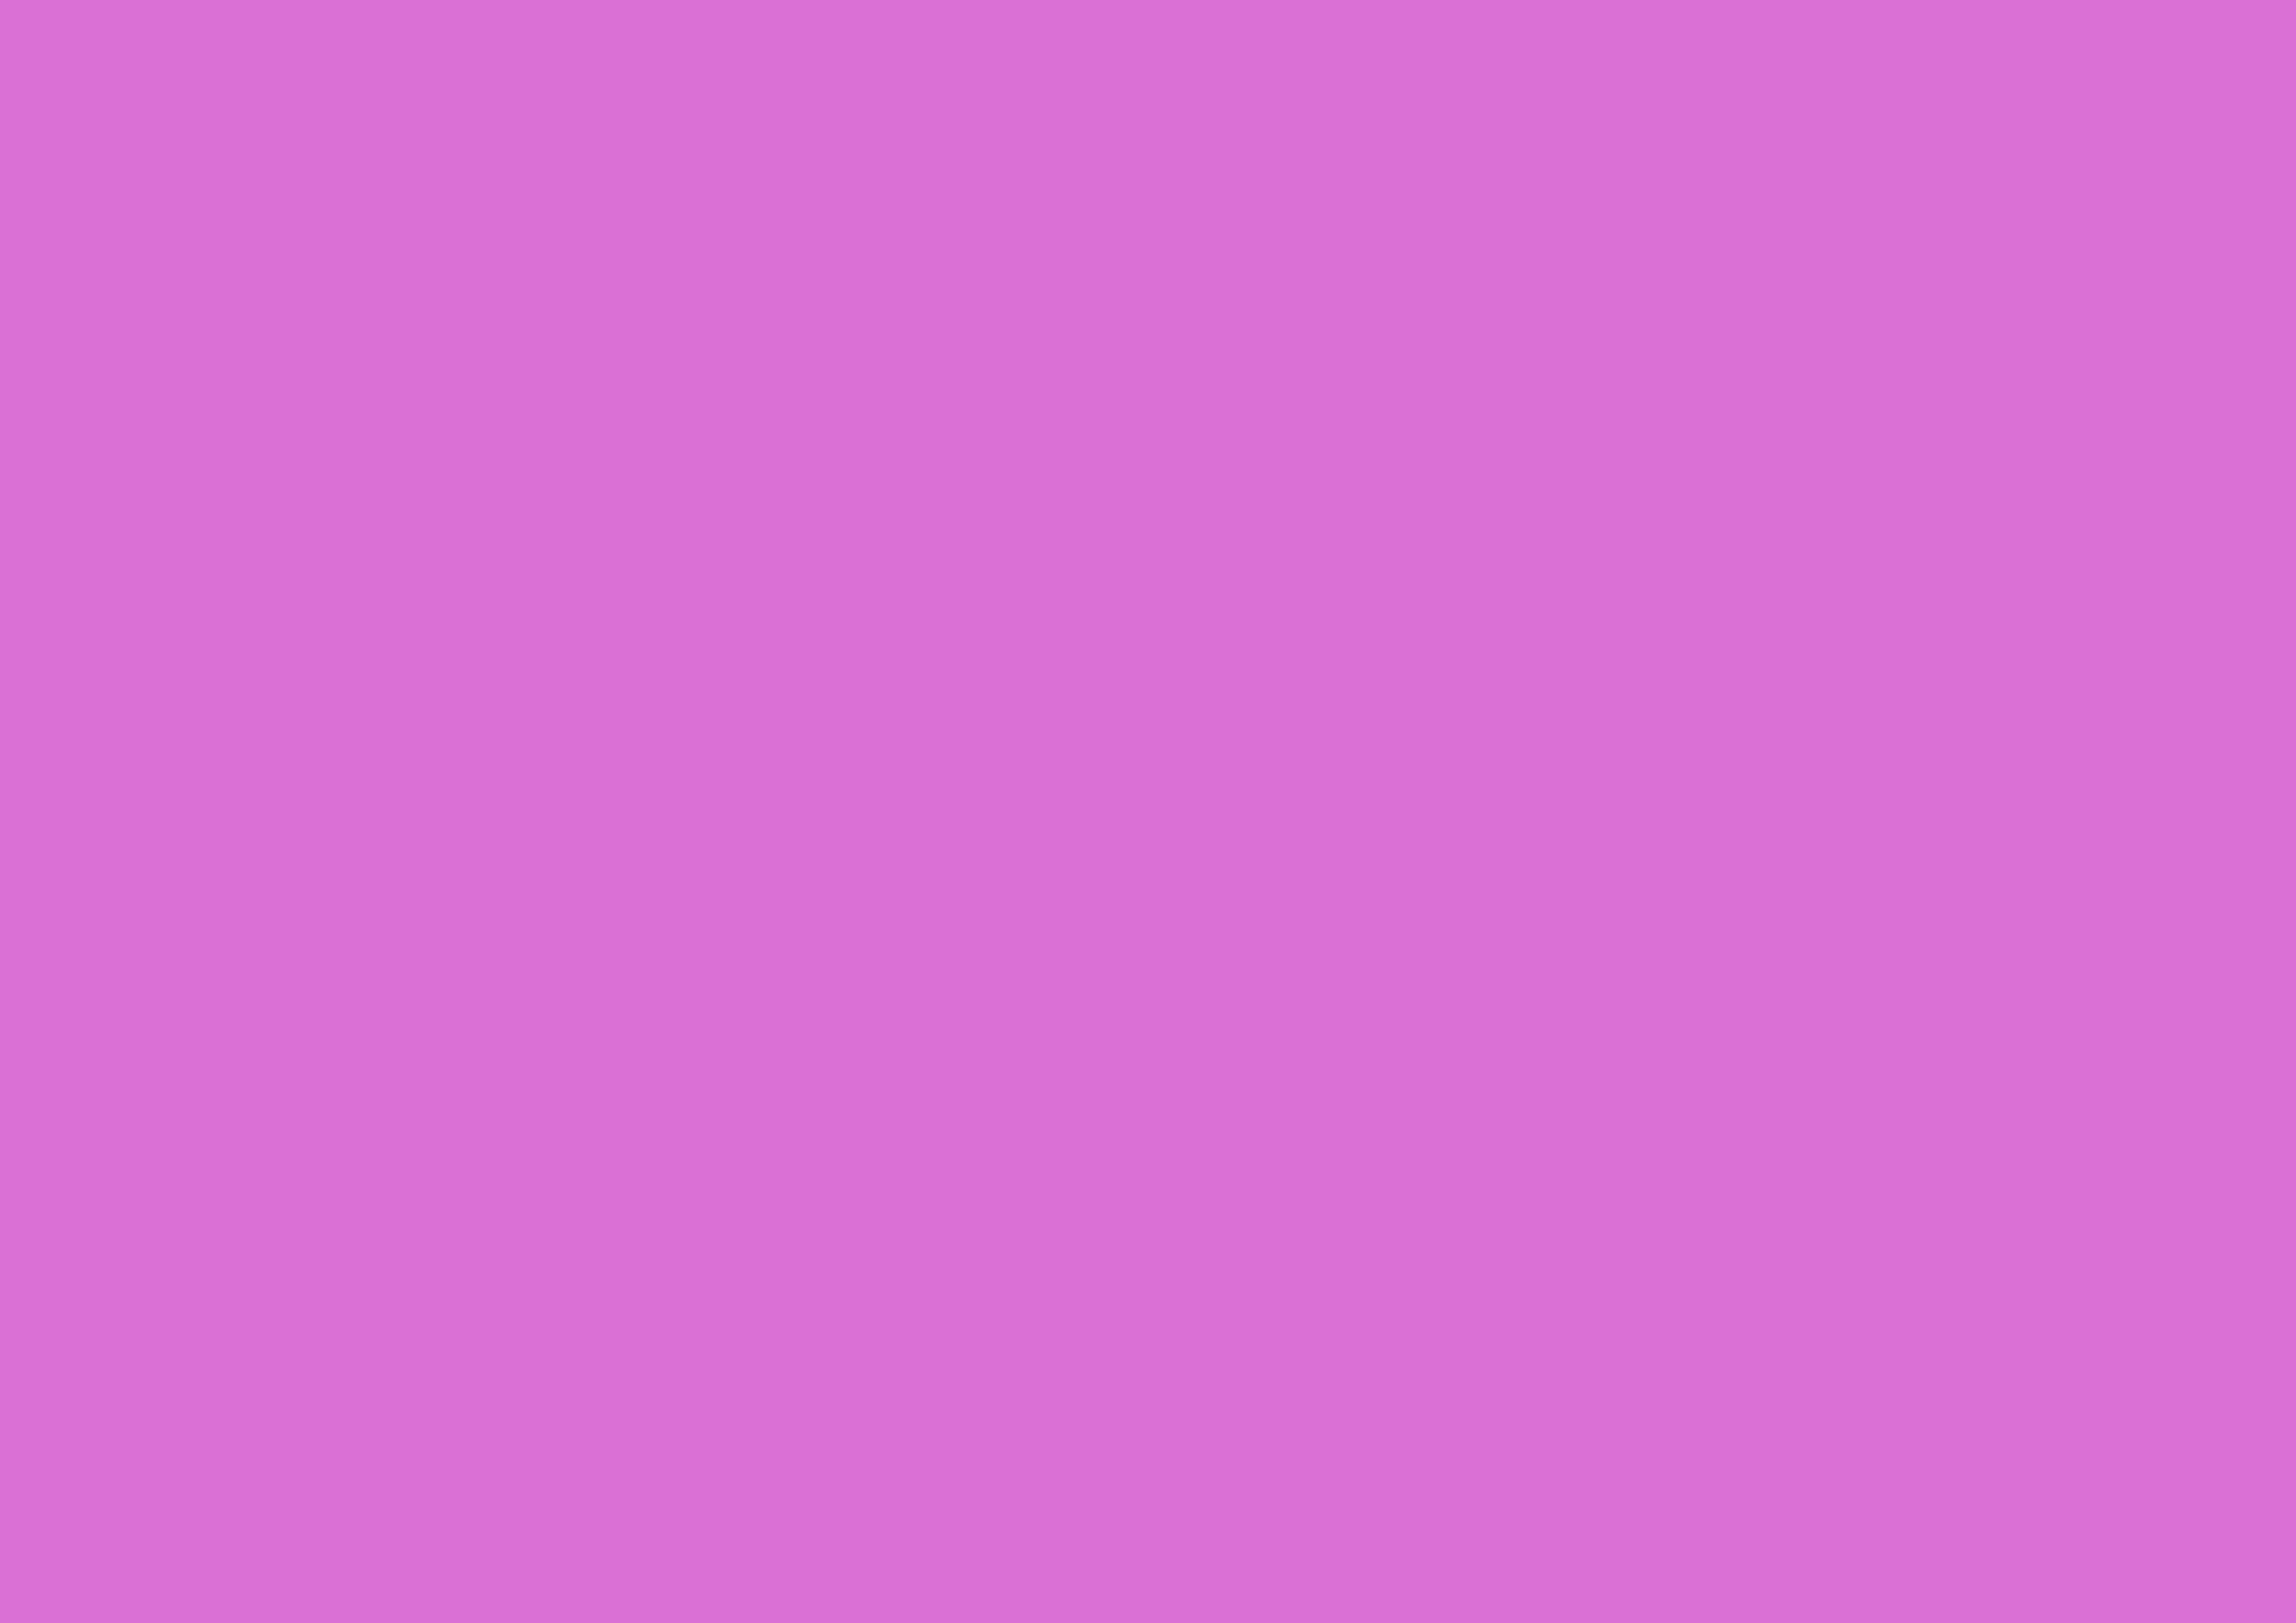 3508x2480 Orchid Solid Color Background